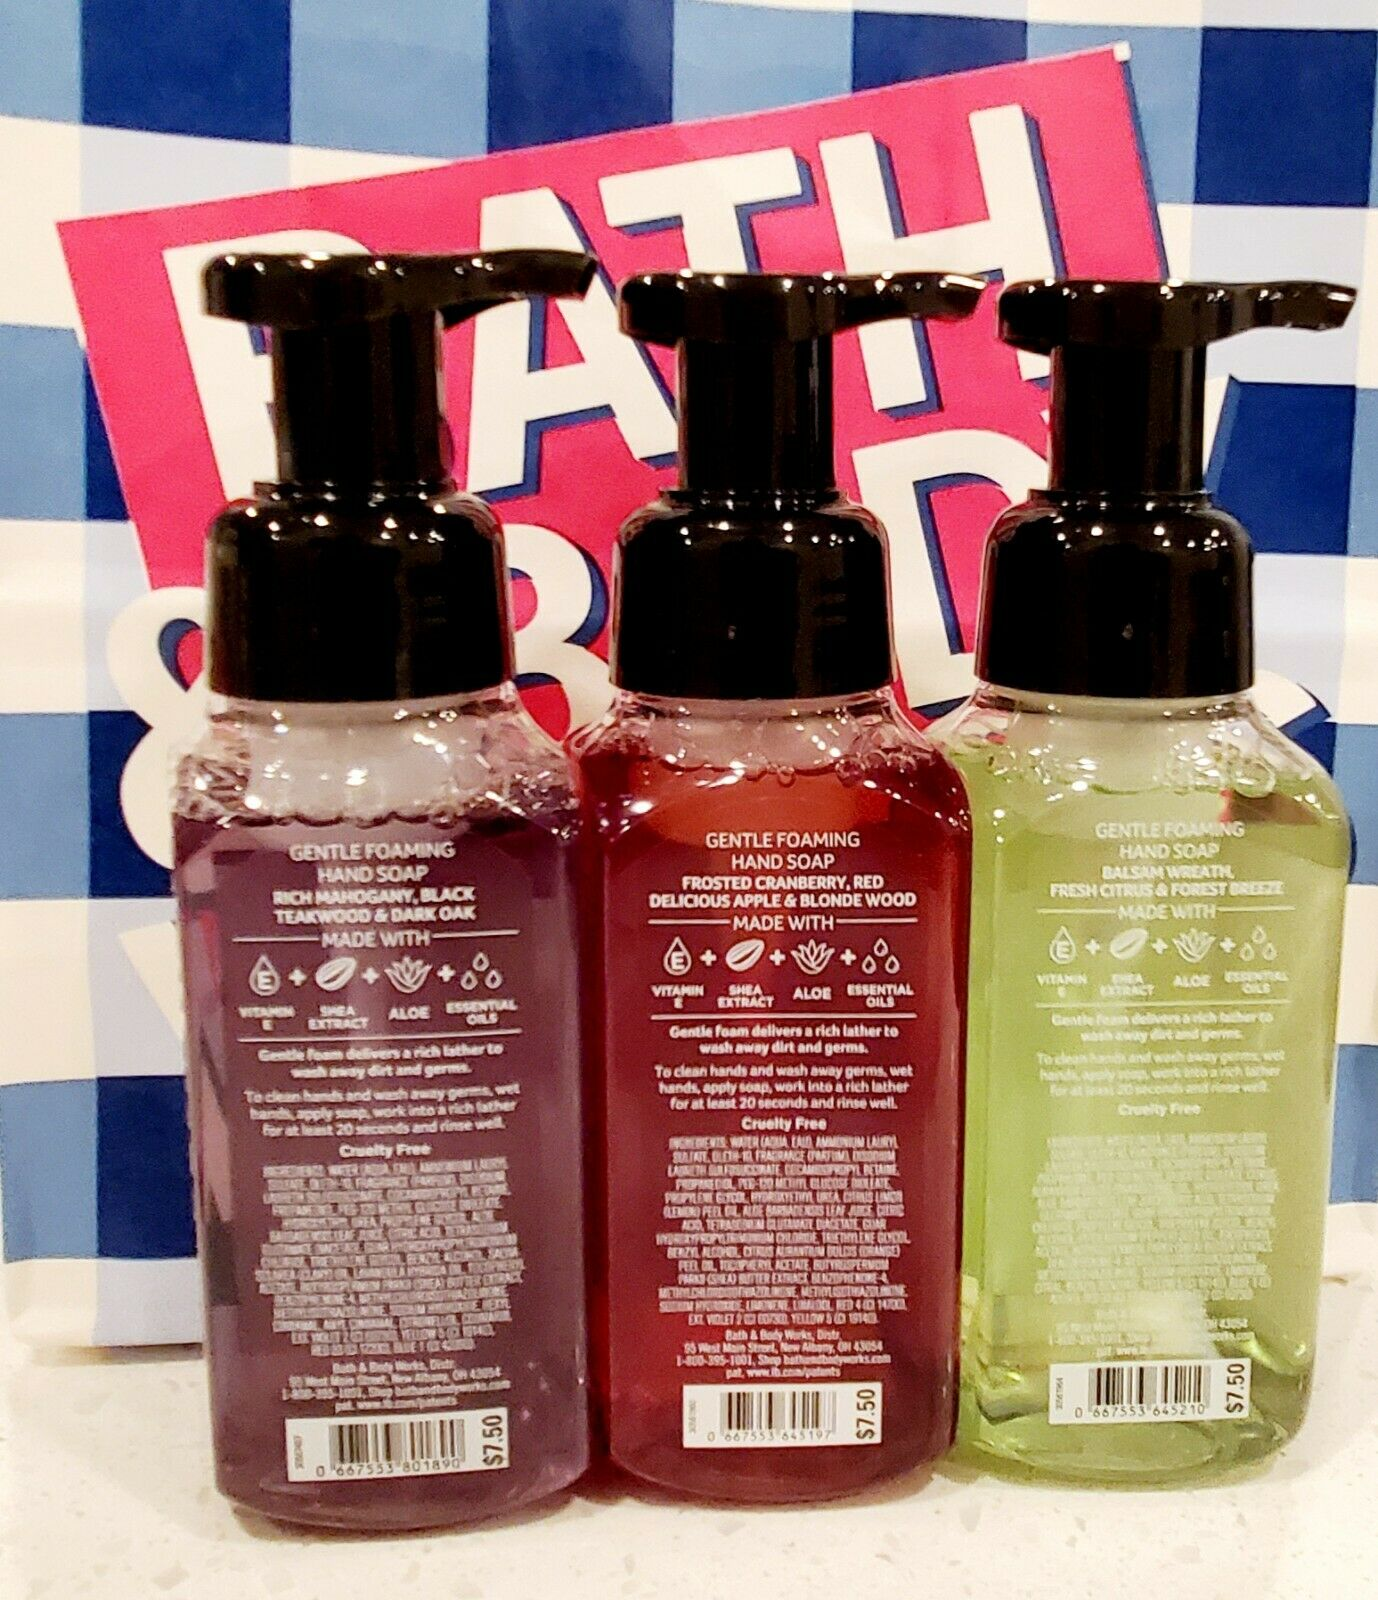 Bath Body Works White Barn Gentle Foaming Hand Soap 8.75 Oz,3 CT, NEW - $26.99